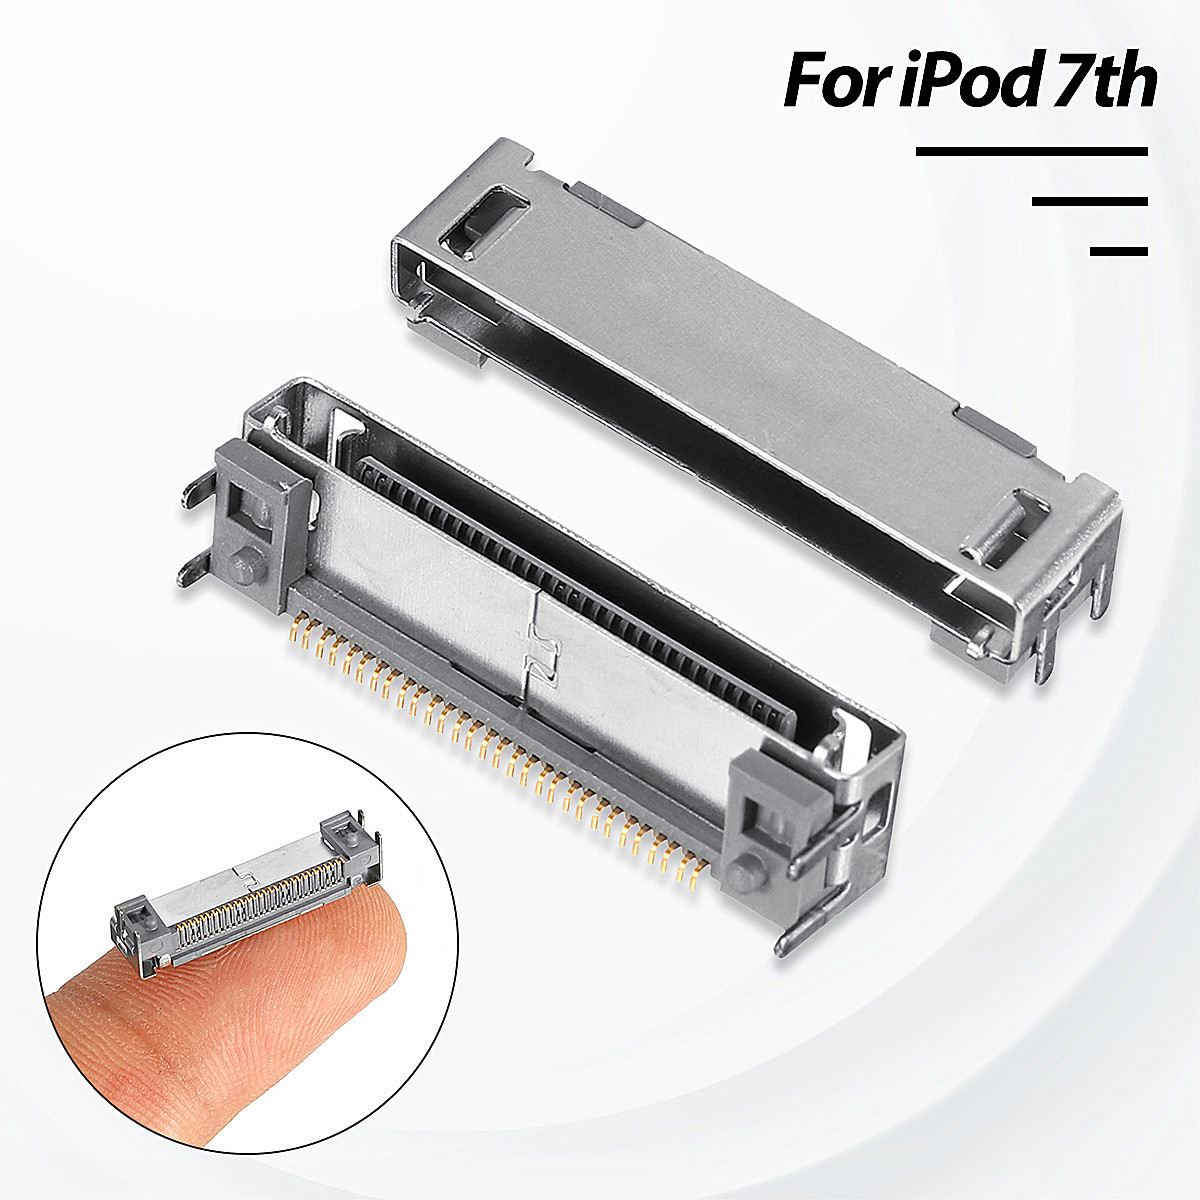 10pcs Bottom Usb Charge Data Dock Port Connector For Ipod 7th Gen Classic 80GB 120GB 160GB wit color eco solvent dx7 print head adapter f189010 f189000 f196000 f196010 printhead cover manifold xenons dx7 head cover